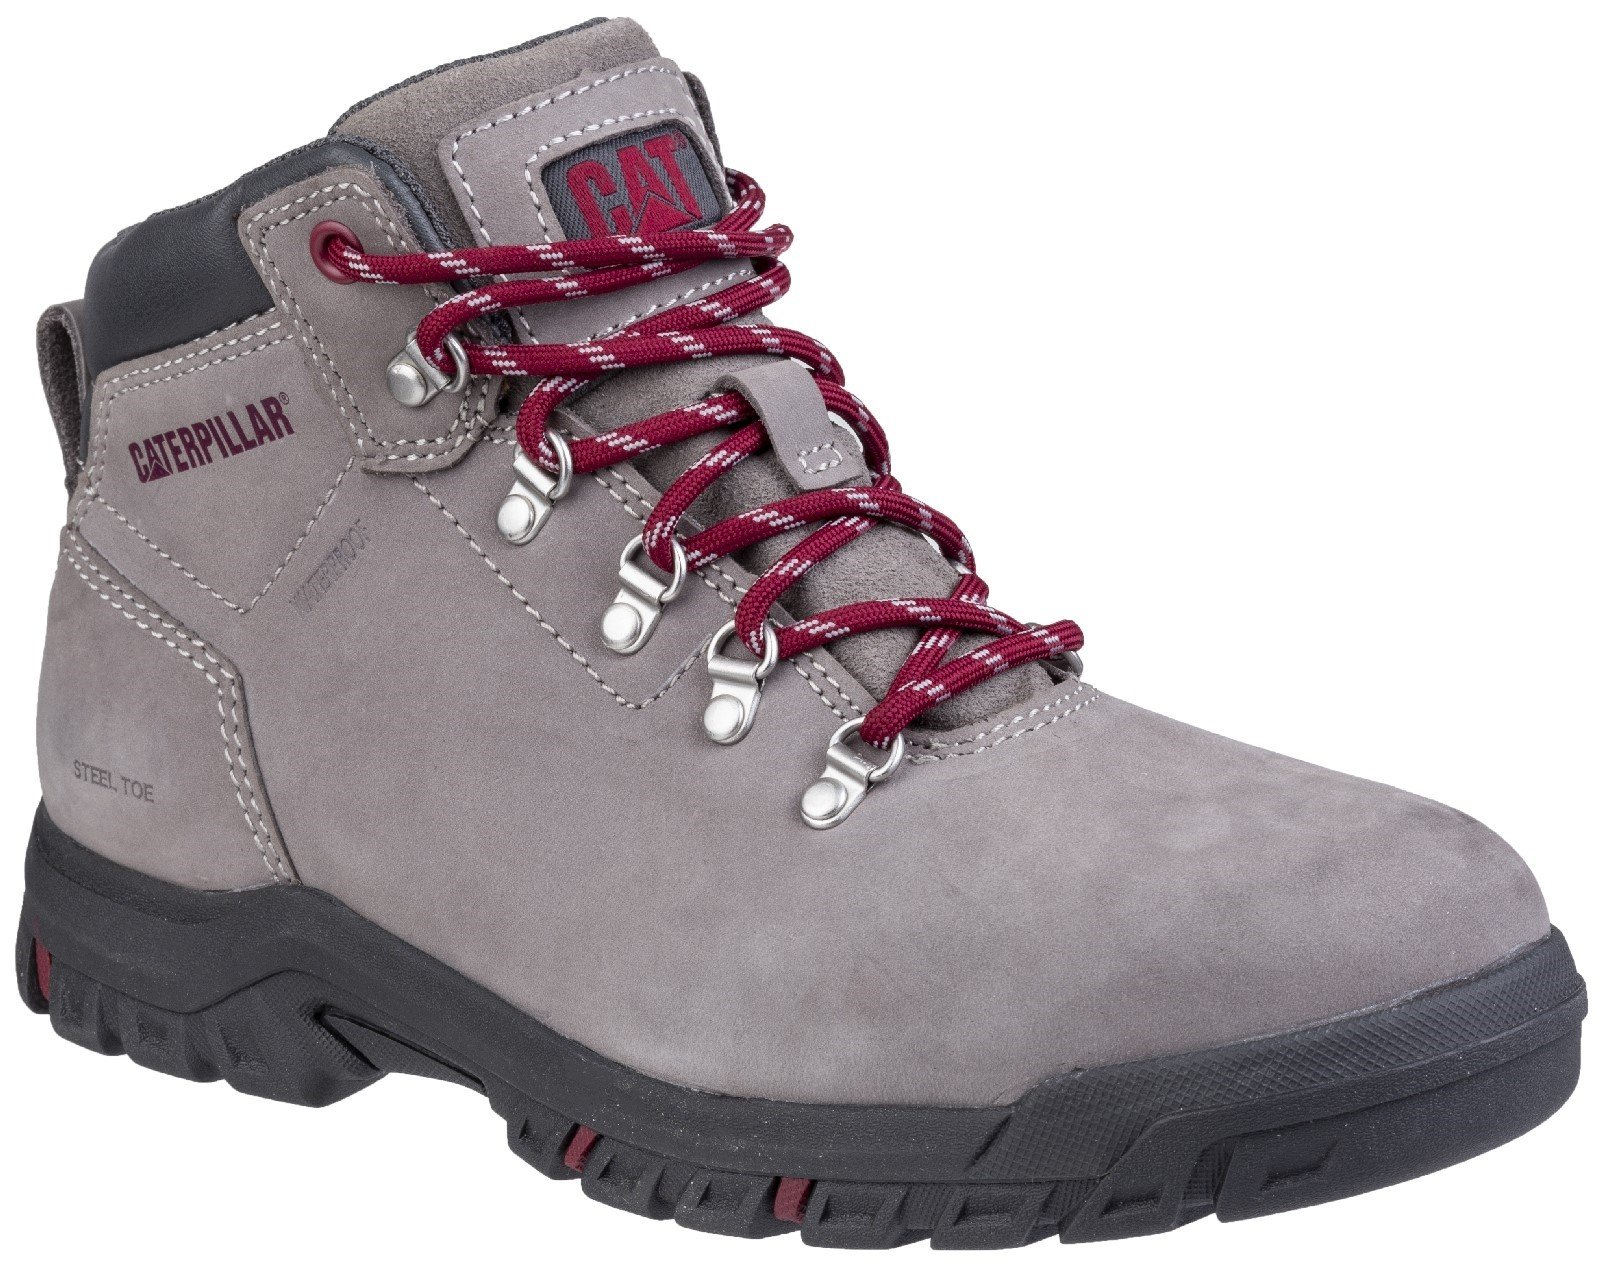 Caterpillar Women's Mae Lace Up Safety Boot Grey 28172 - Grey 3